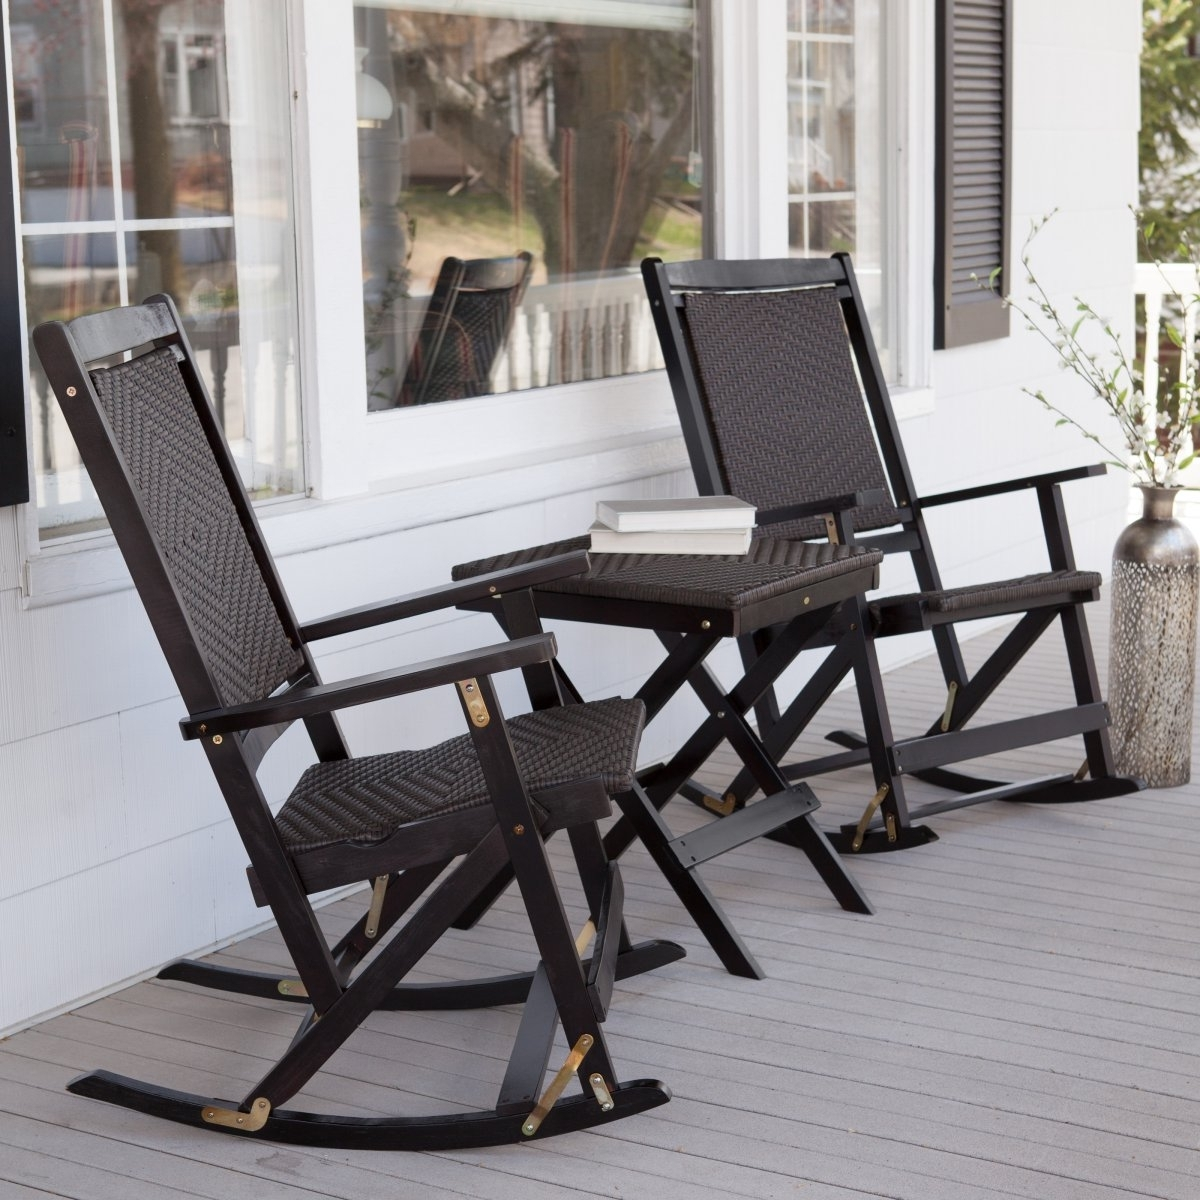 Popular Outdoor Fascinating Rocking Chairs For Front Porch Outdoors White Inside Outdoor Patio Rocking Chairs (View 9 of 15)